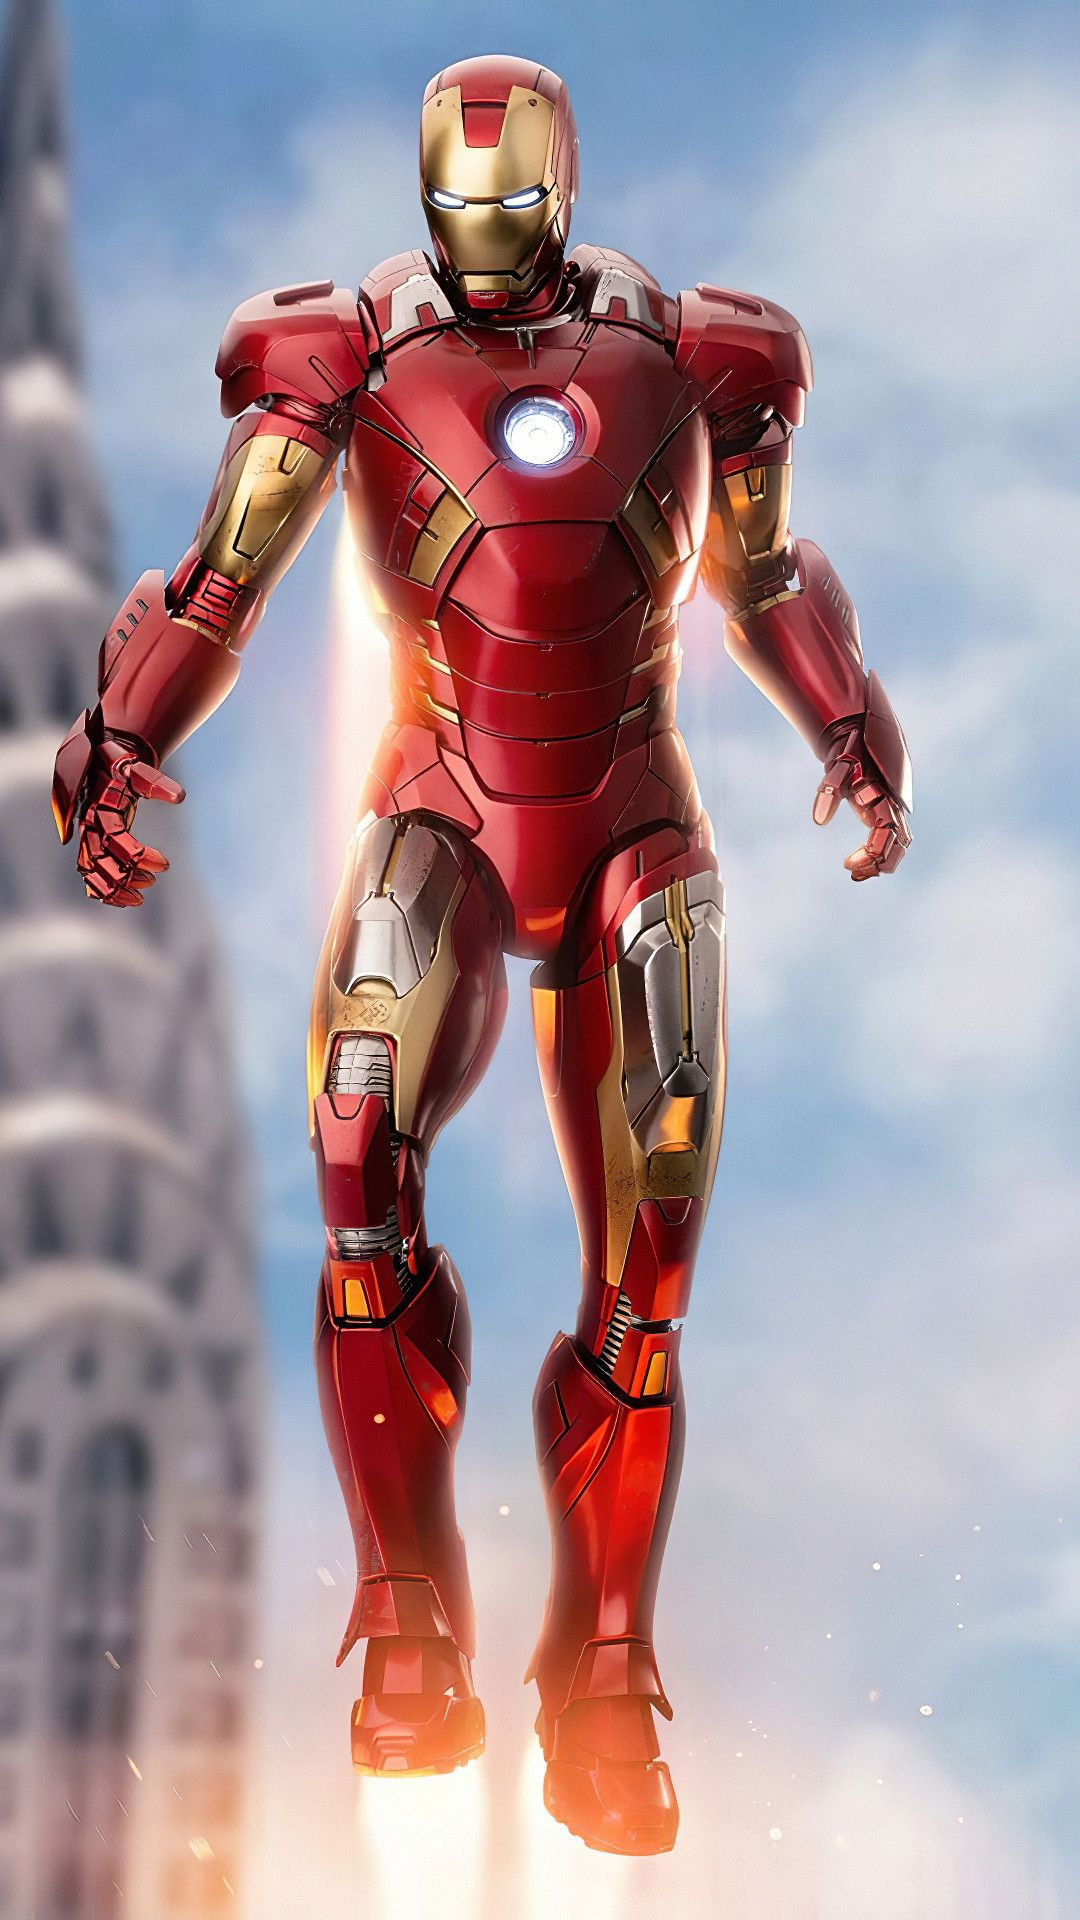 Iron Man New2019 Mobile Wallpaper (iPhone, Android